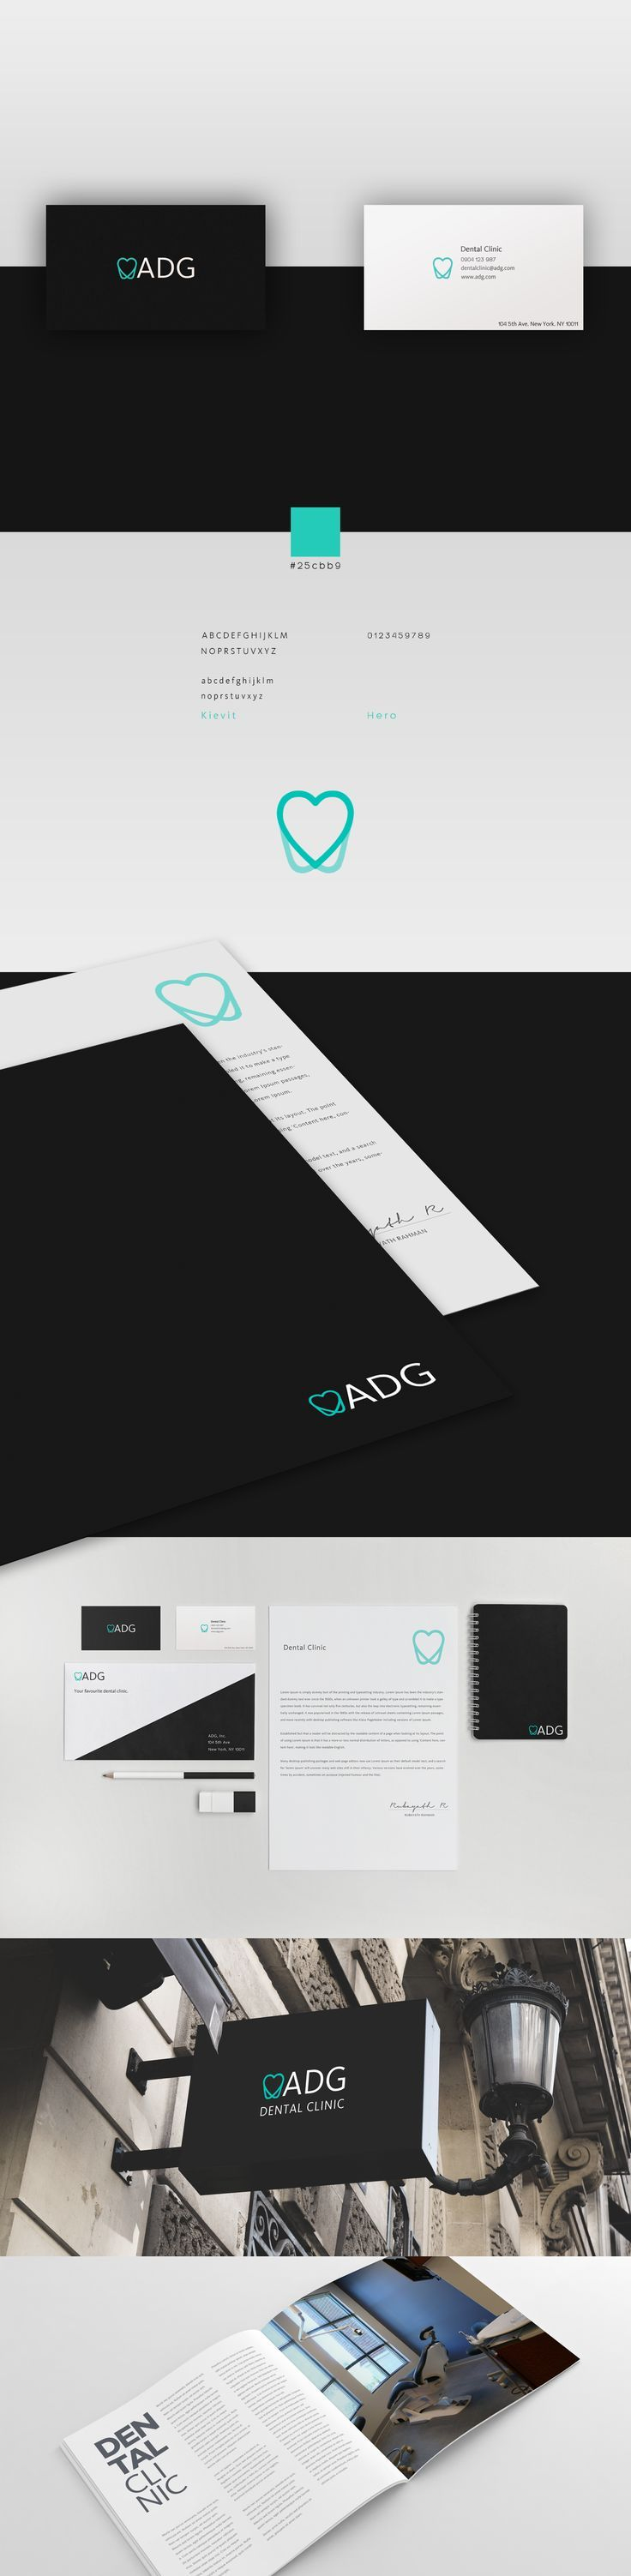 ADG Dental Clinic branding.. If you like UX, design, or design thinking, check out theuxblog.com